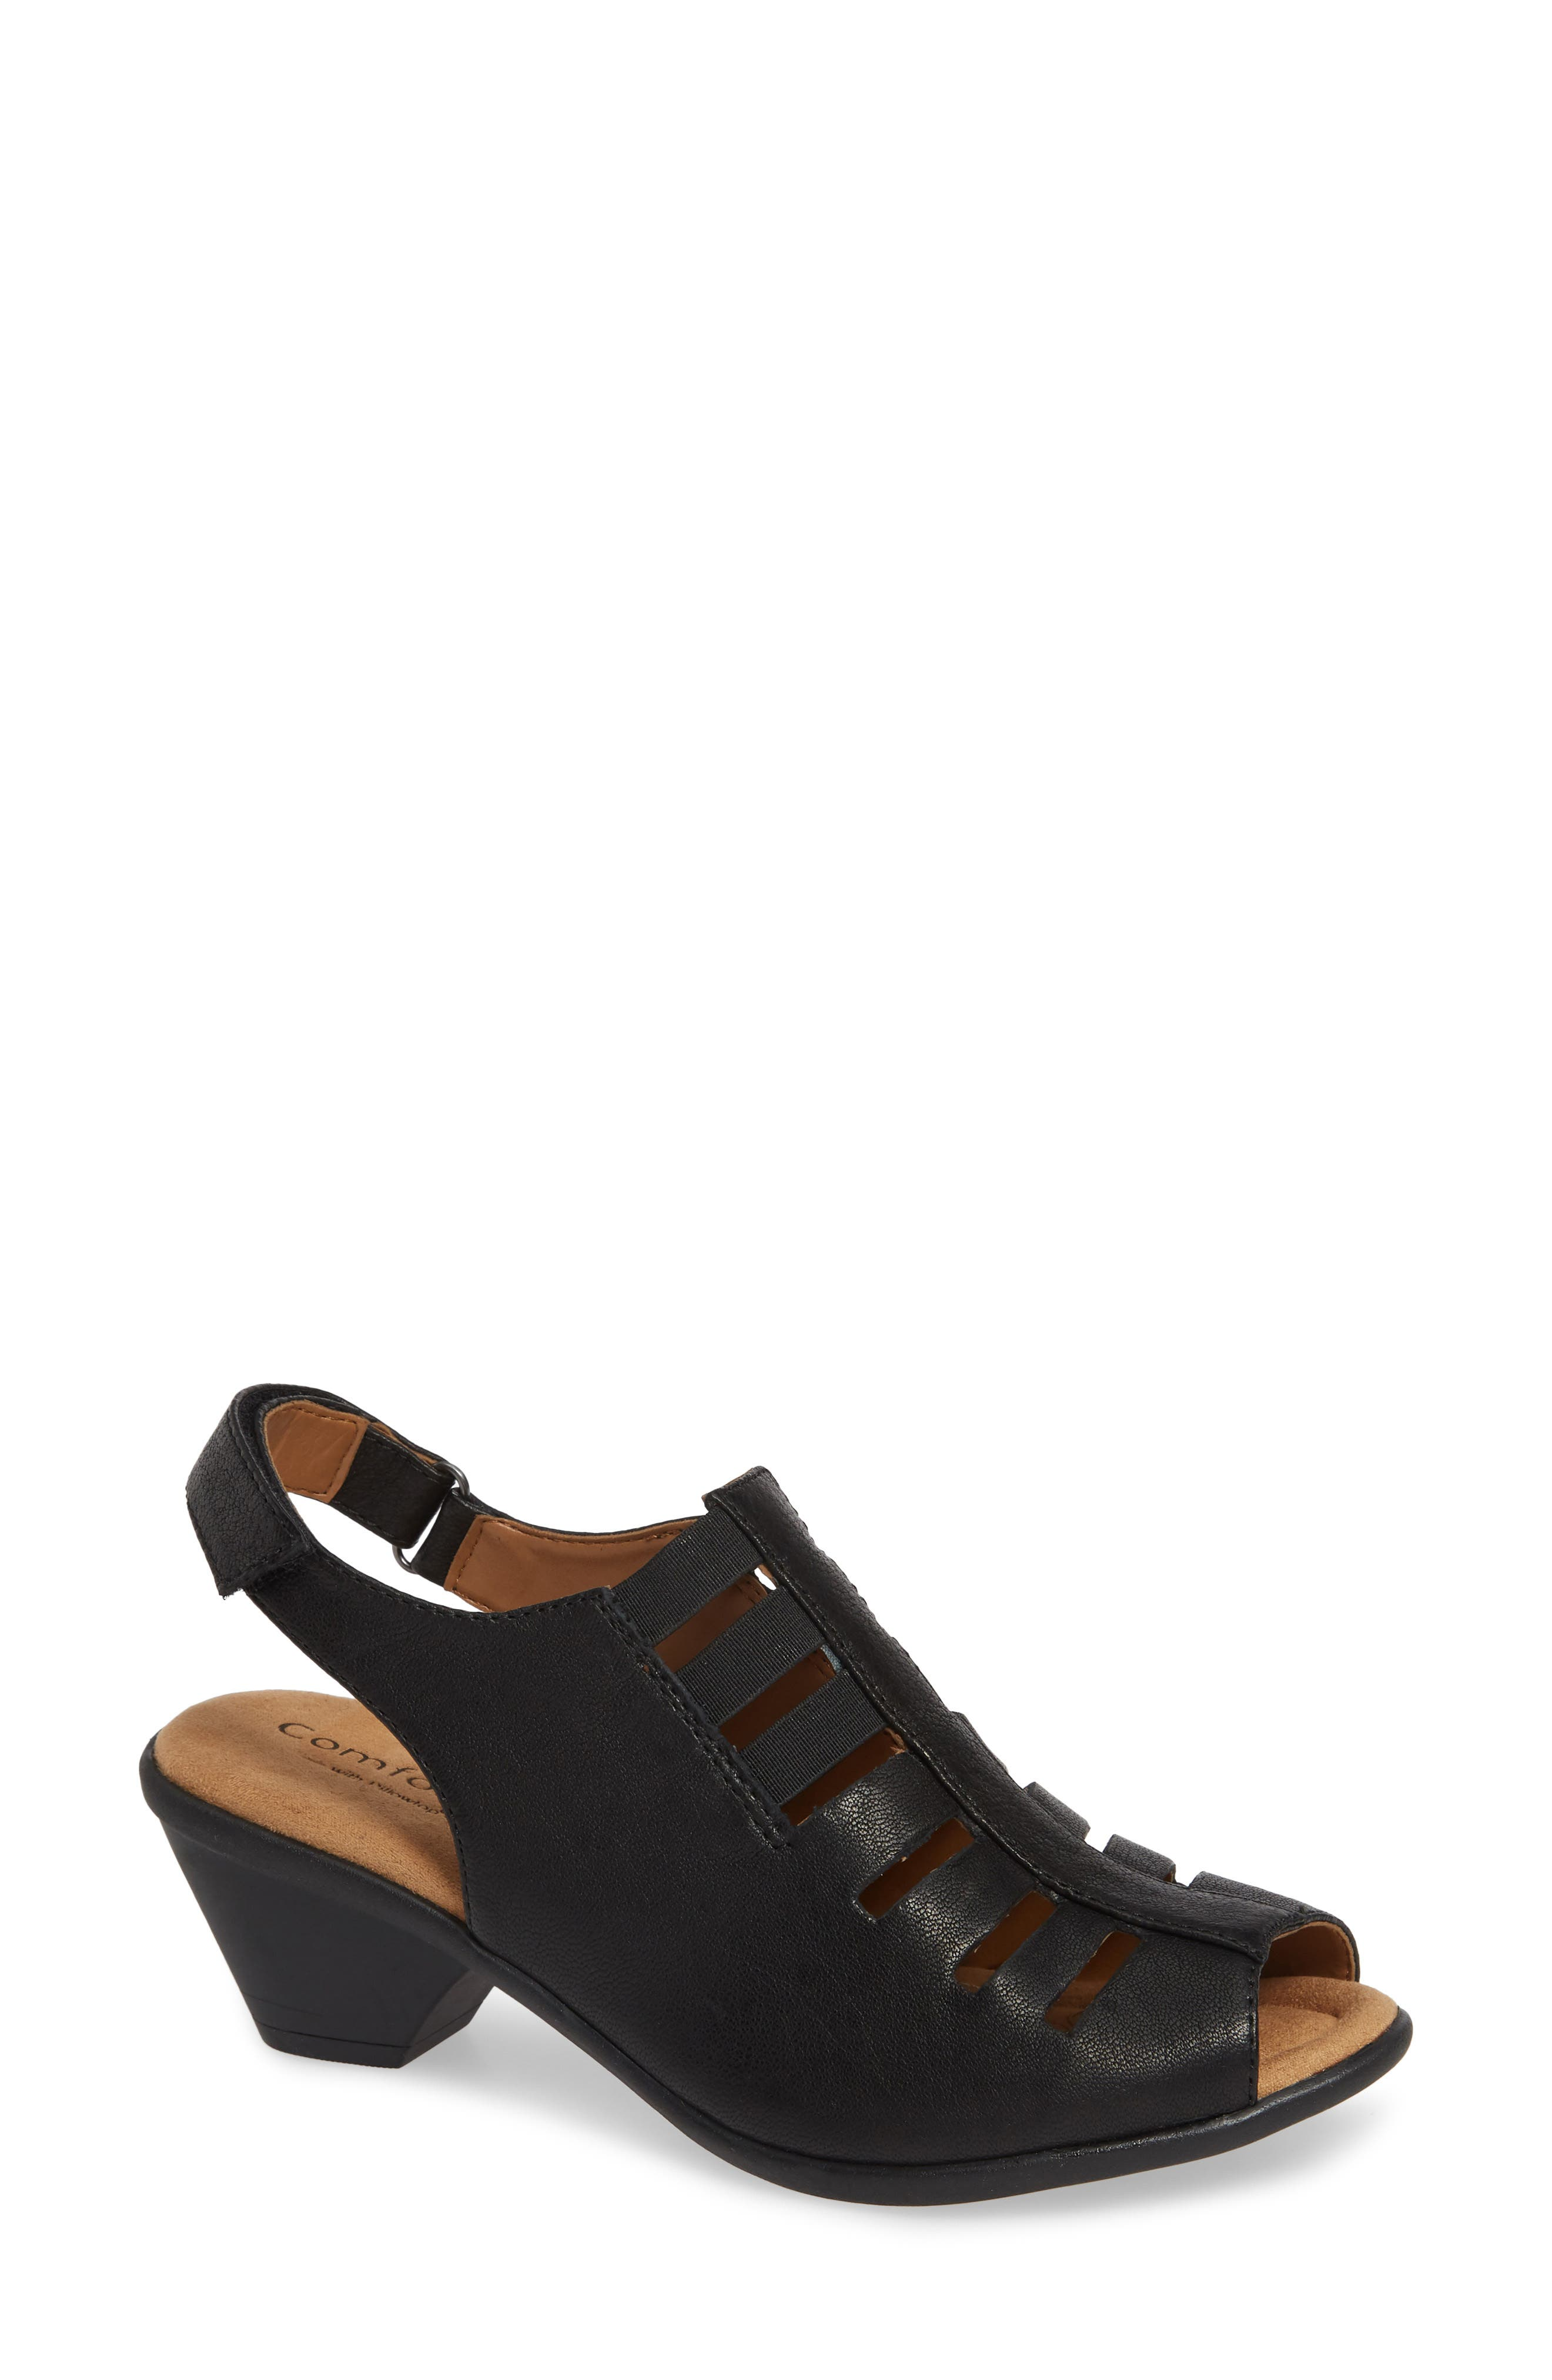 7bc6b66982 Women's Comfortiva Shoes | Nordstrom